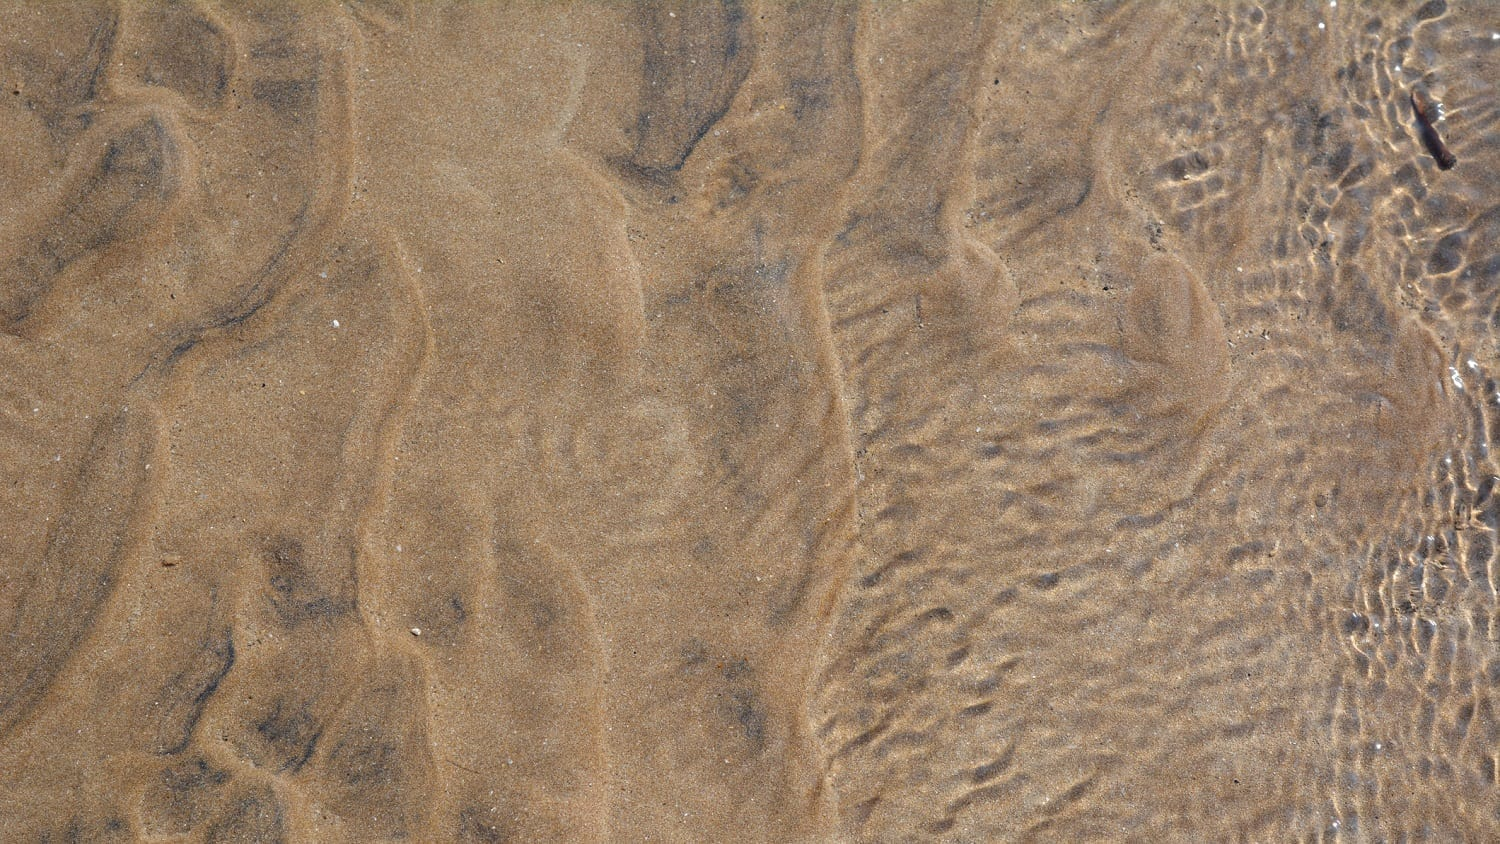 Water flowing over sand ripples: Photo 192874537 © Ajinkya Shinde | Dreamstime.com